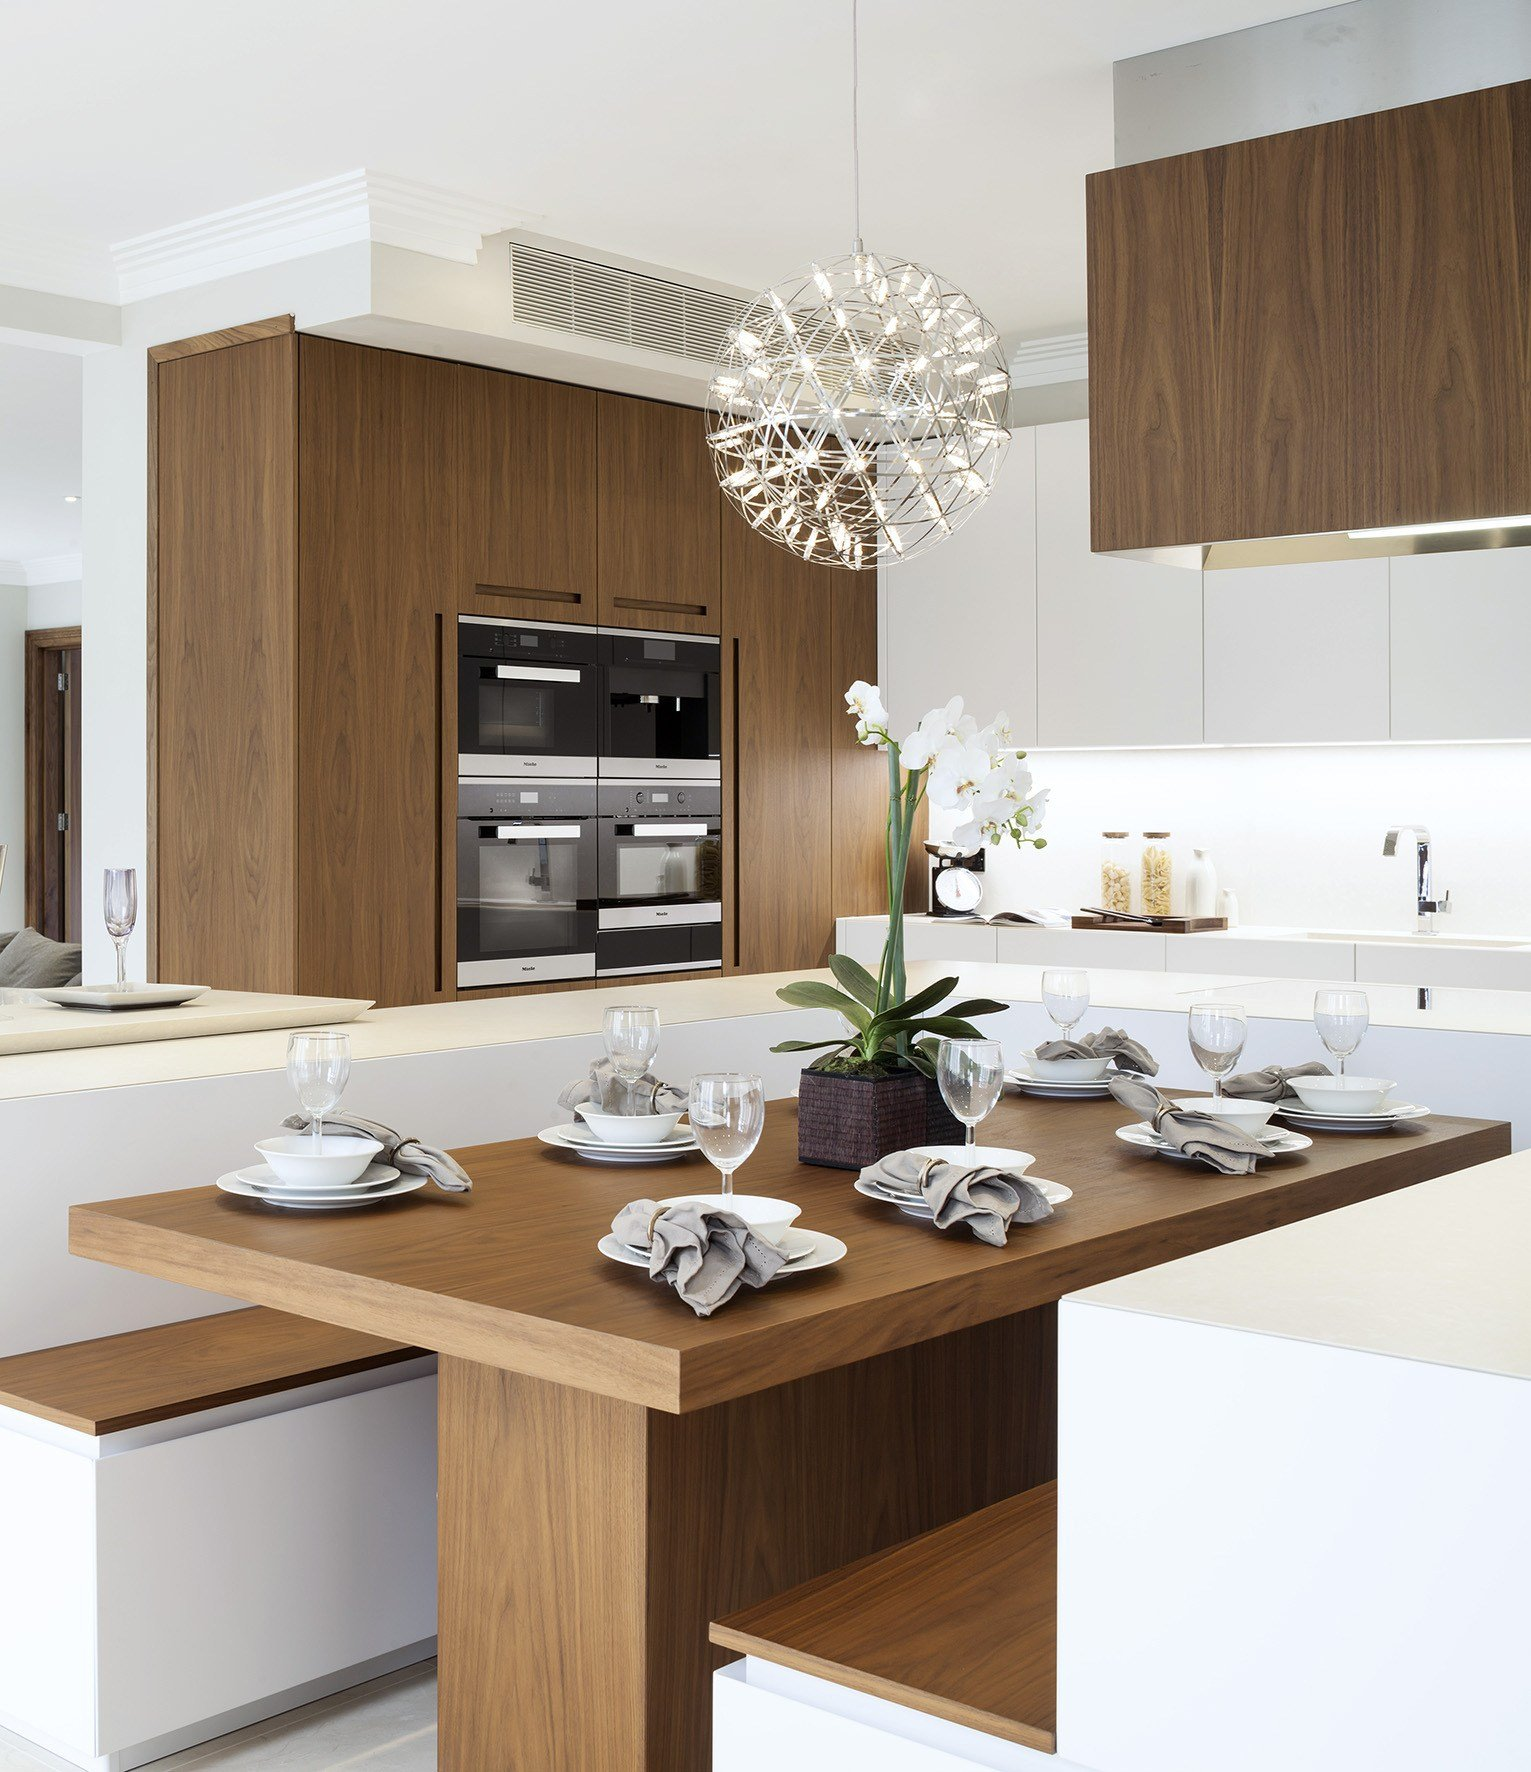 Awesome cucine con panca pictures - Foto cucine con isola ...